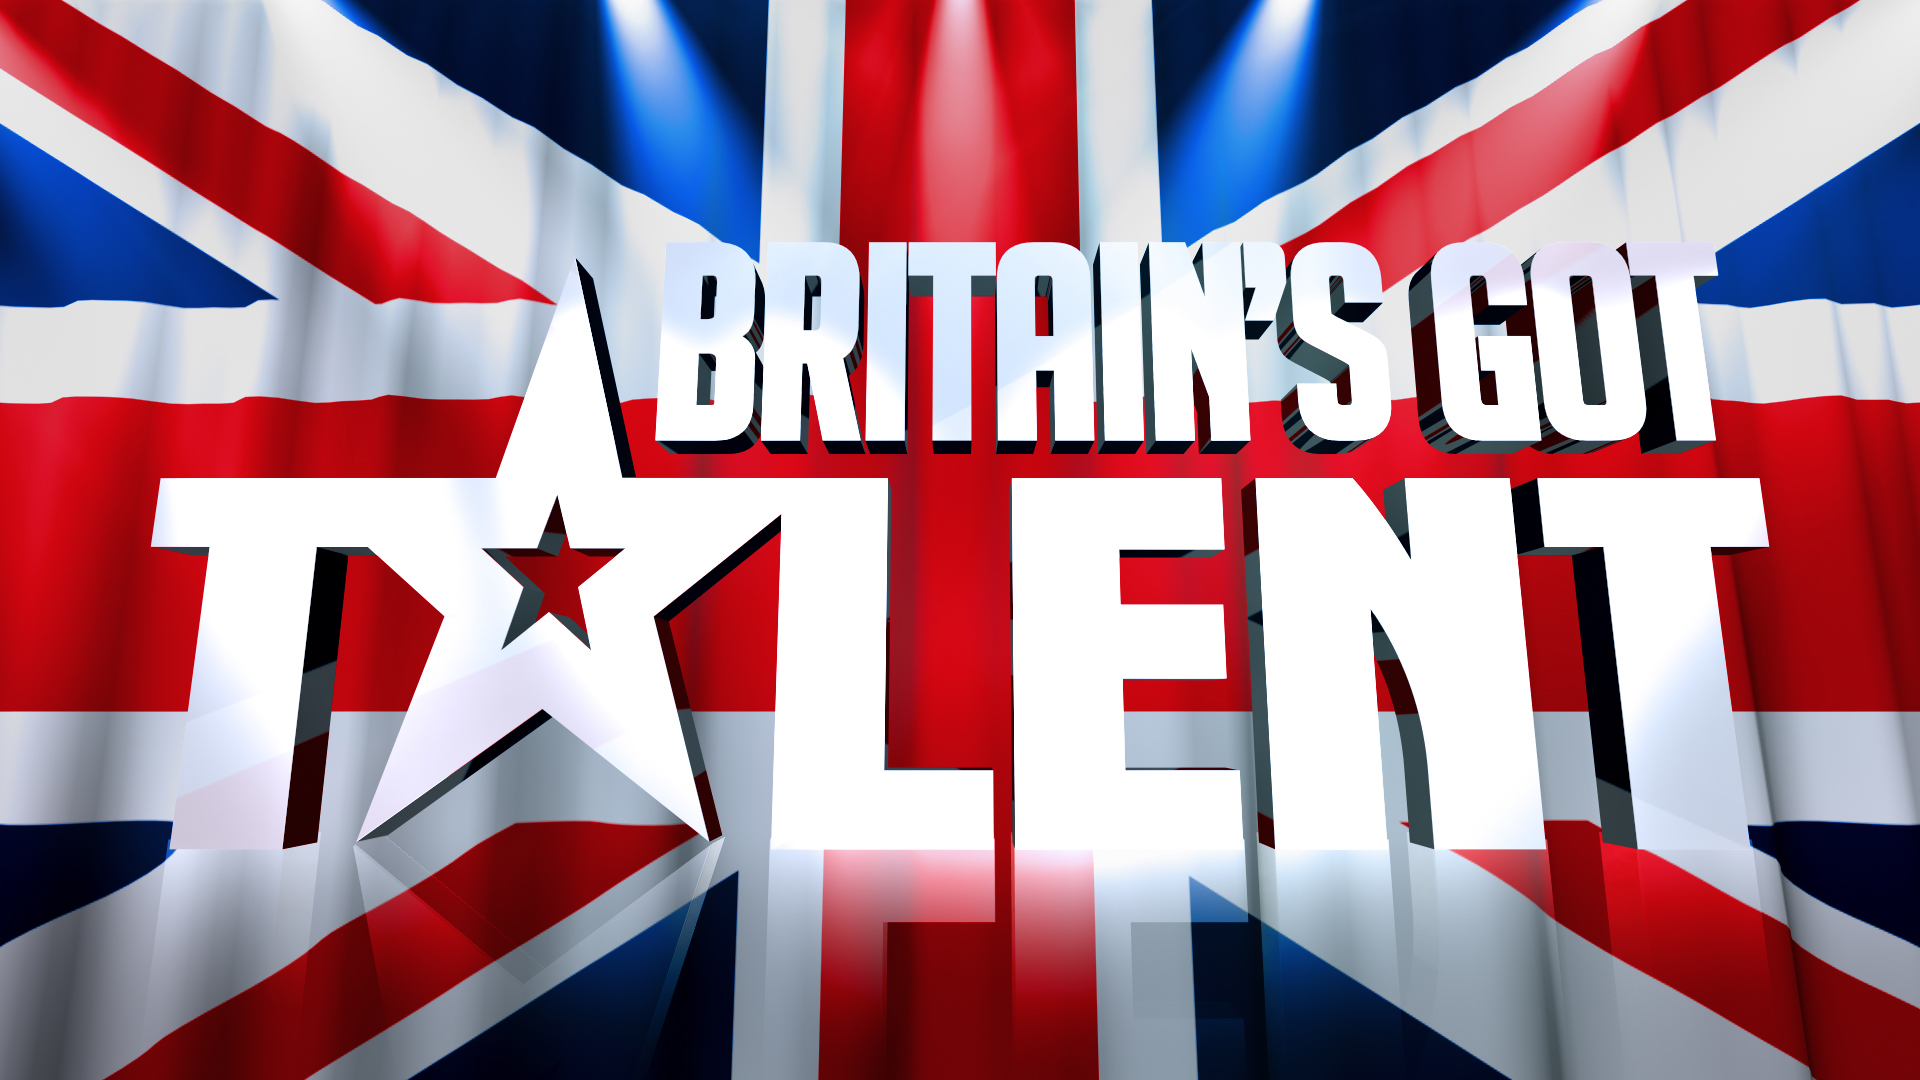 BGT star opens up about his mental health battle